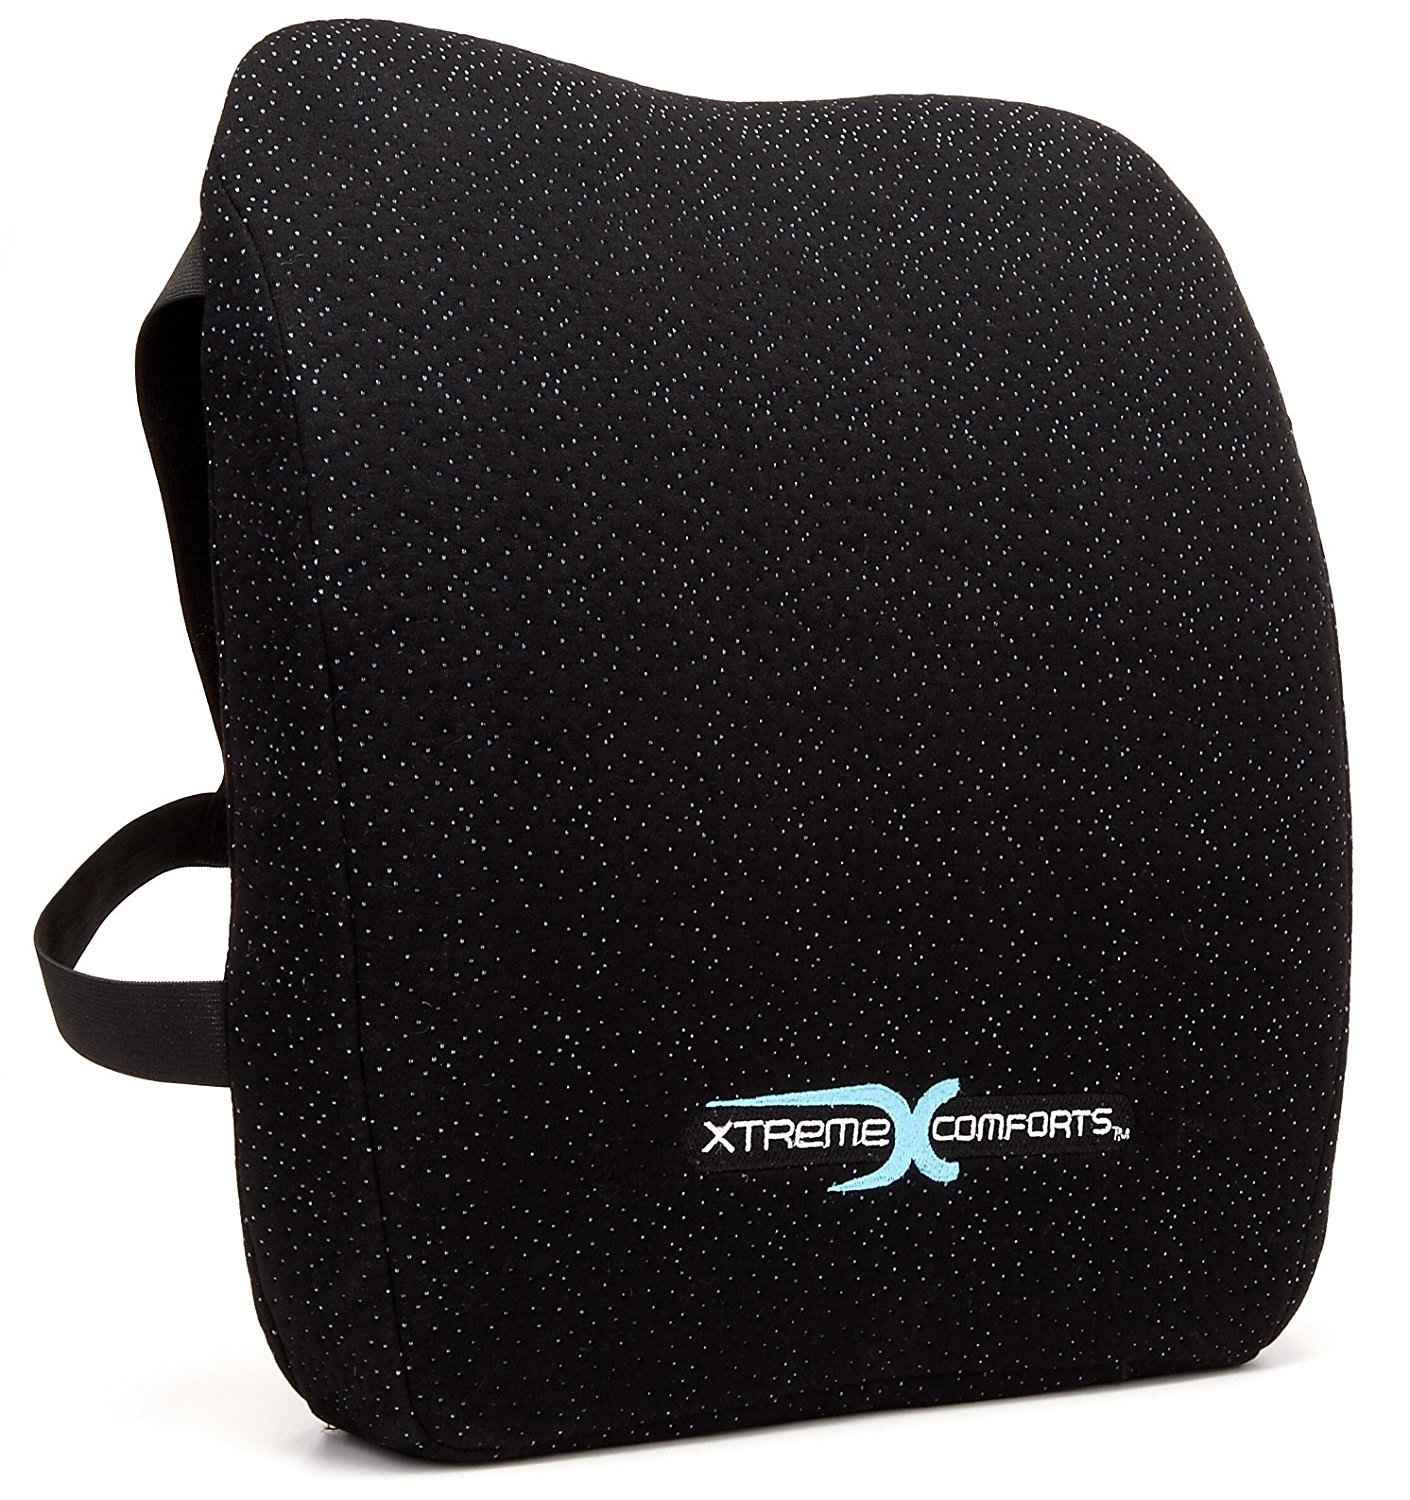 lumbar support for truck drivers